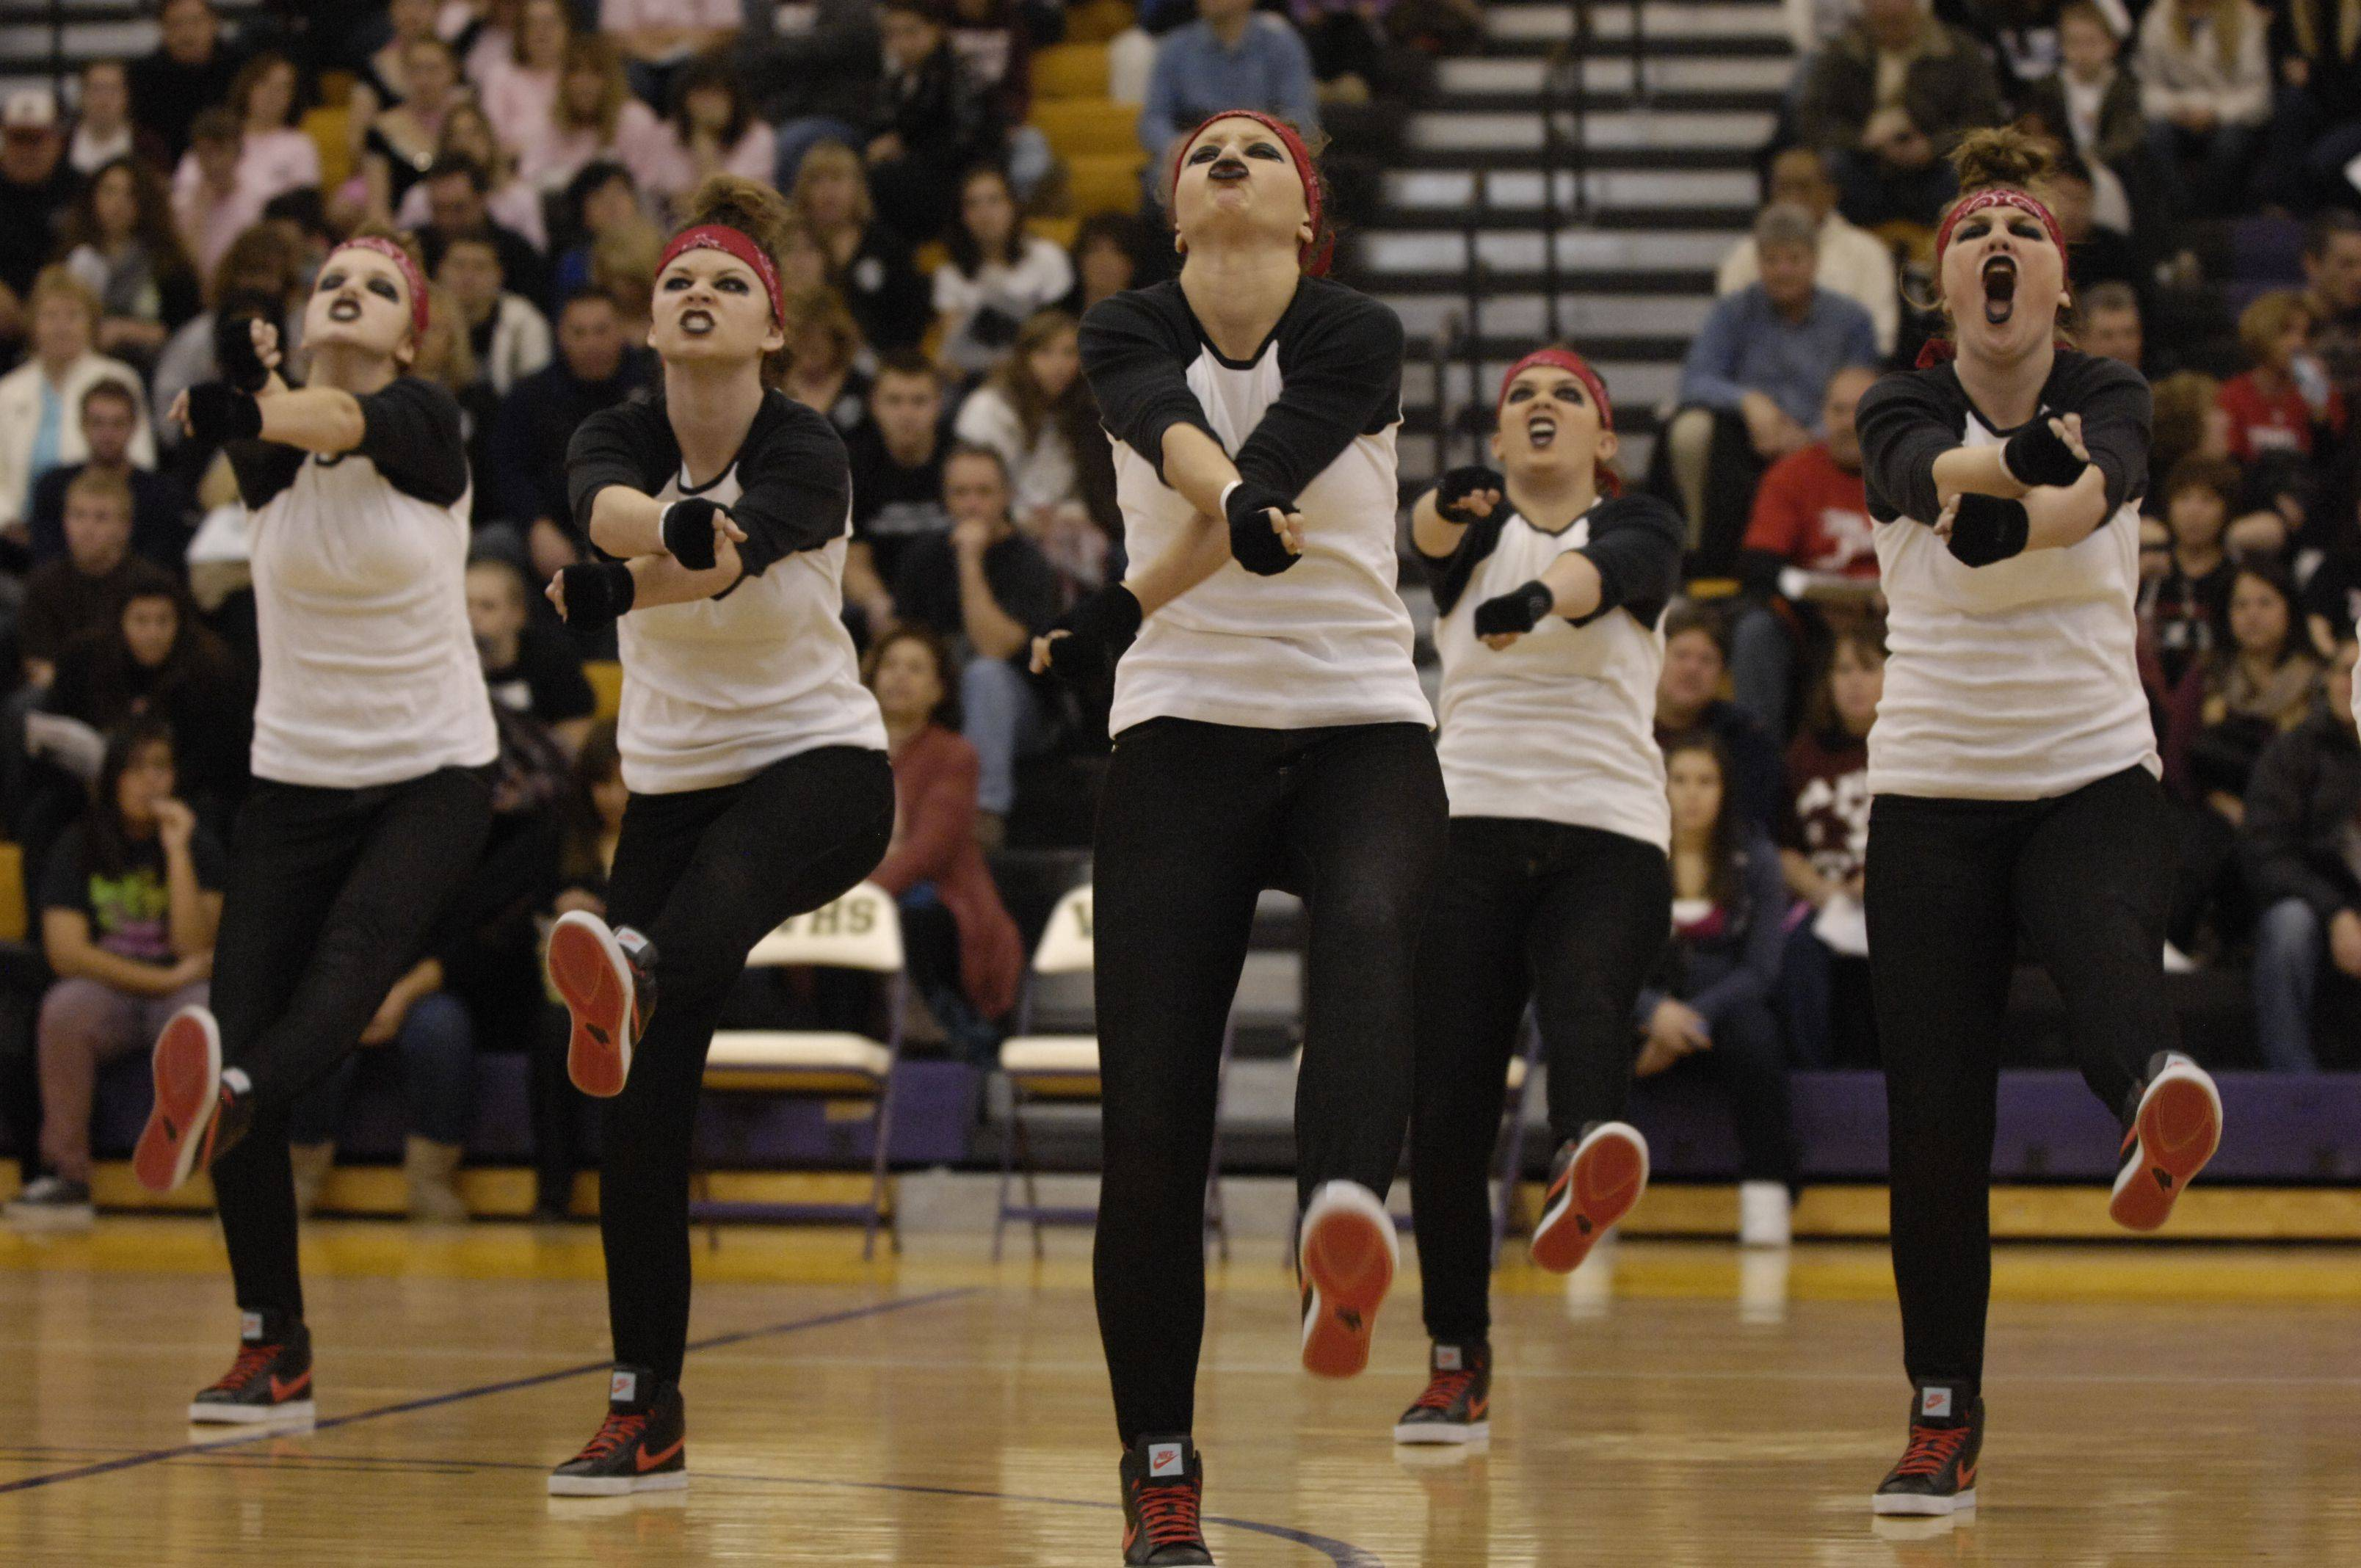 Warren Township High School performs in the AAA Hip Hop division during the Team Dance Illinois Wauconda Invitational competition at Wauconda High School.